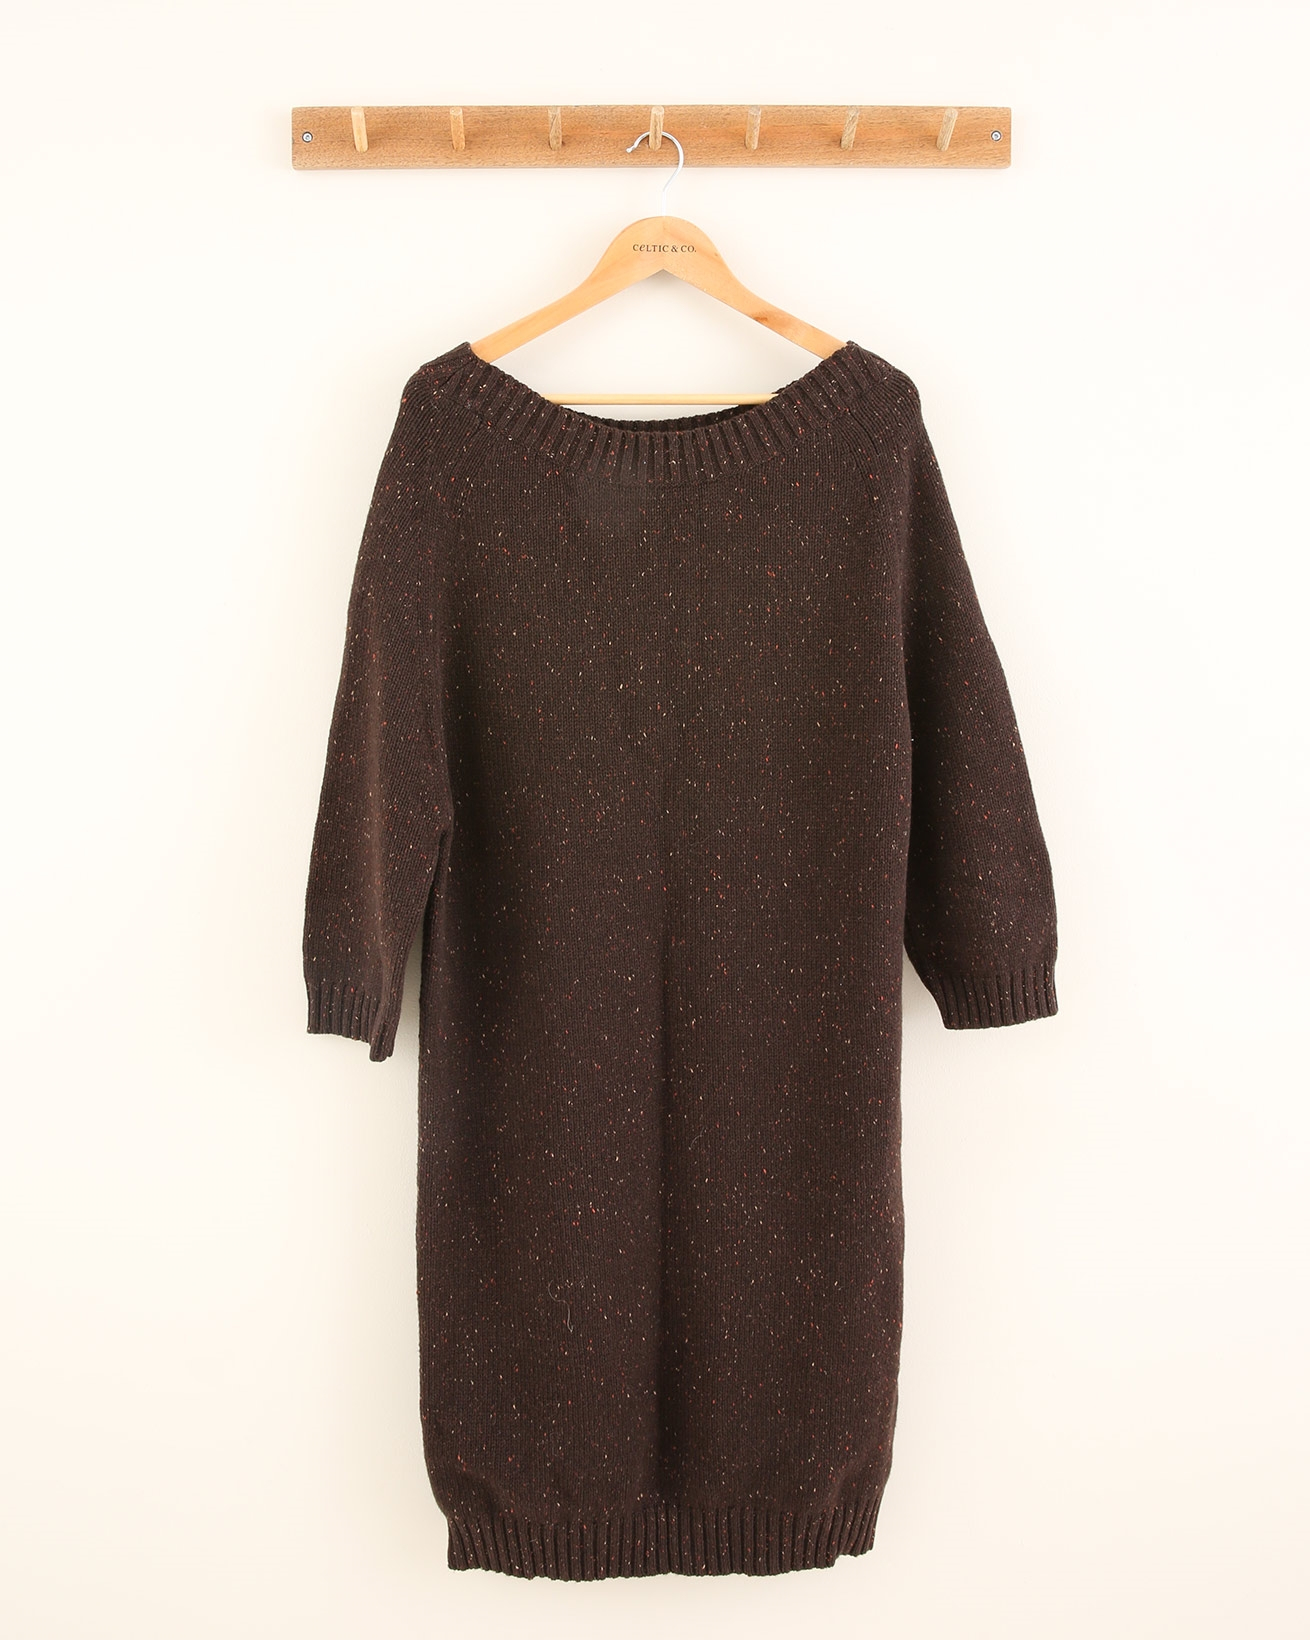 Donegal Midi Dress - Size Medium - Tanners Brown - 1699